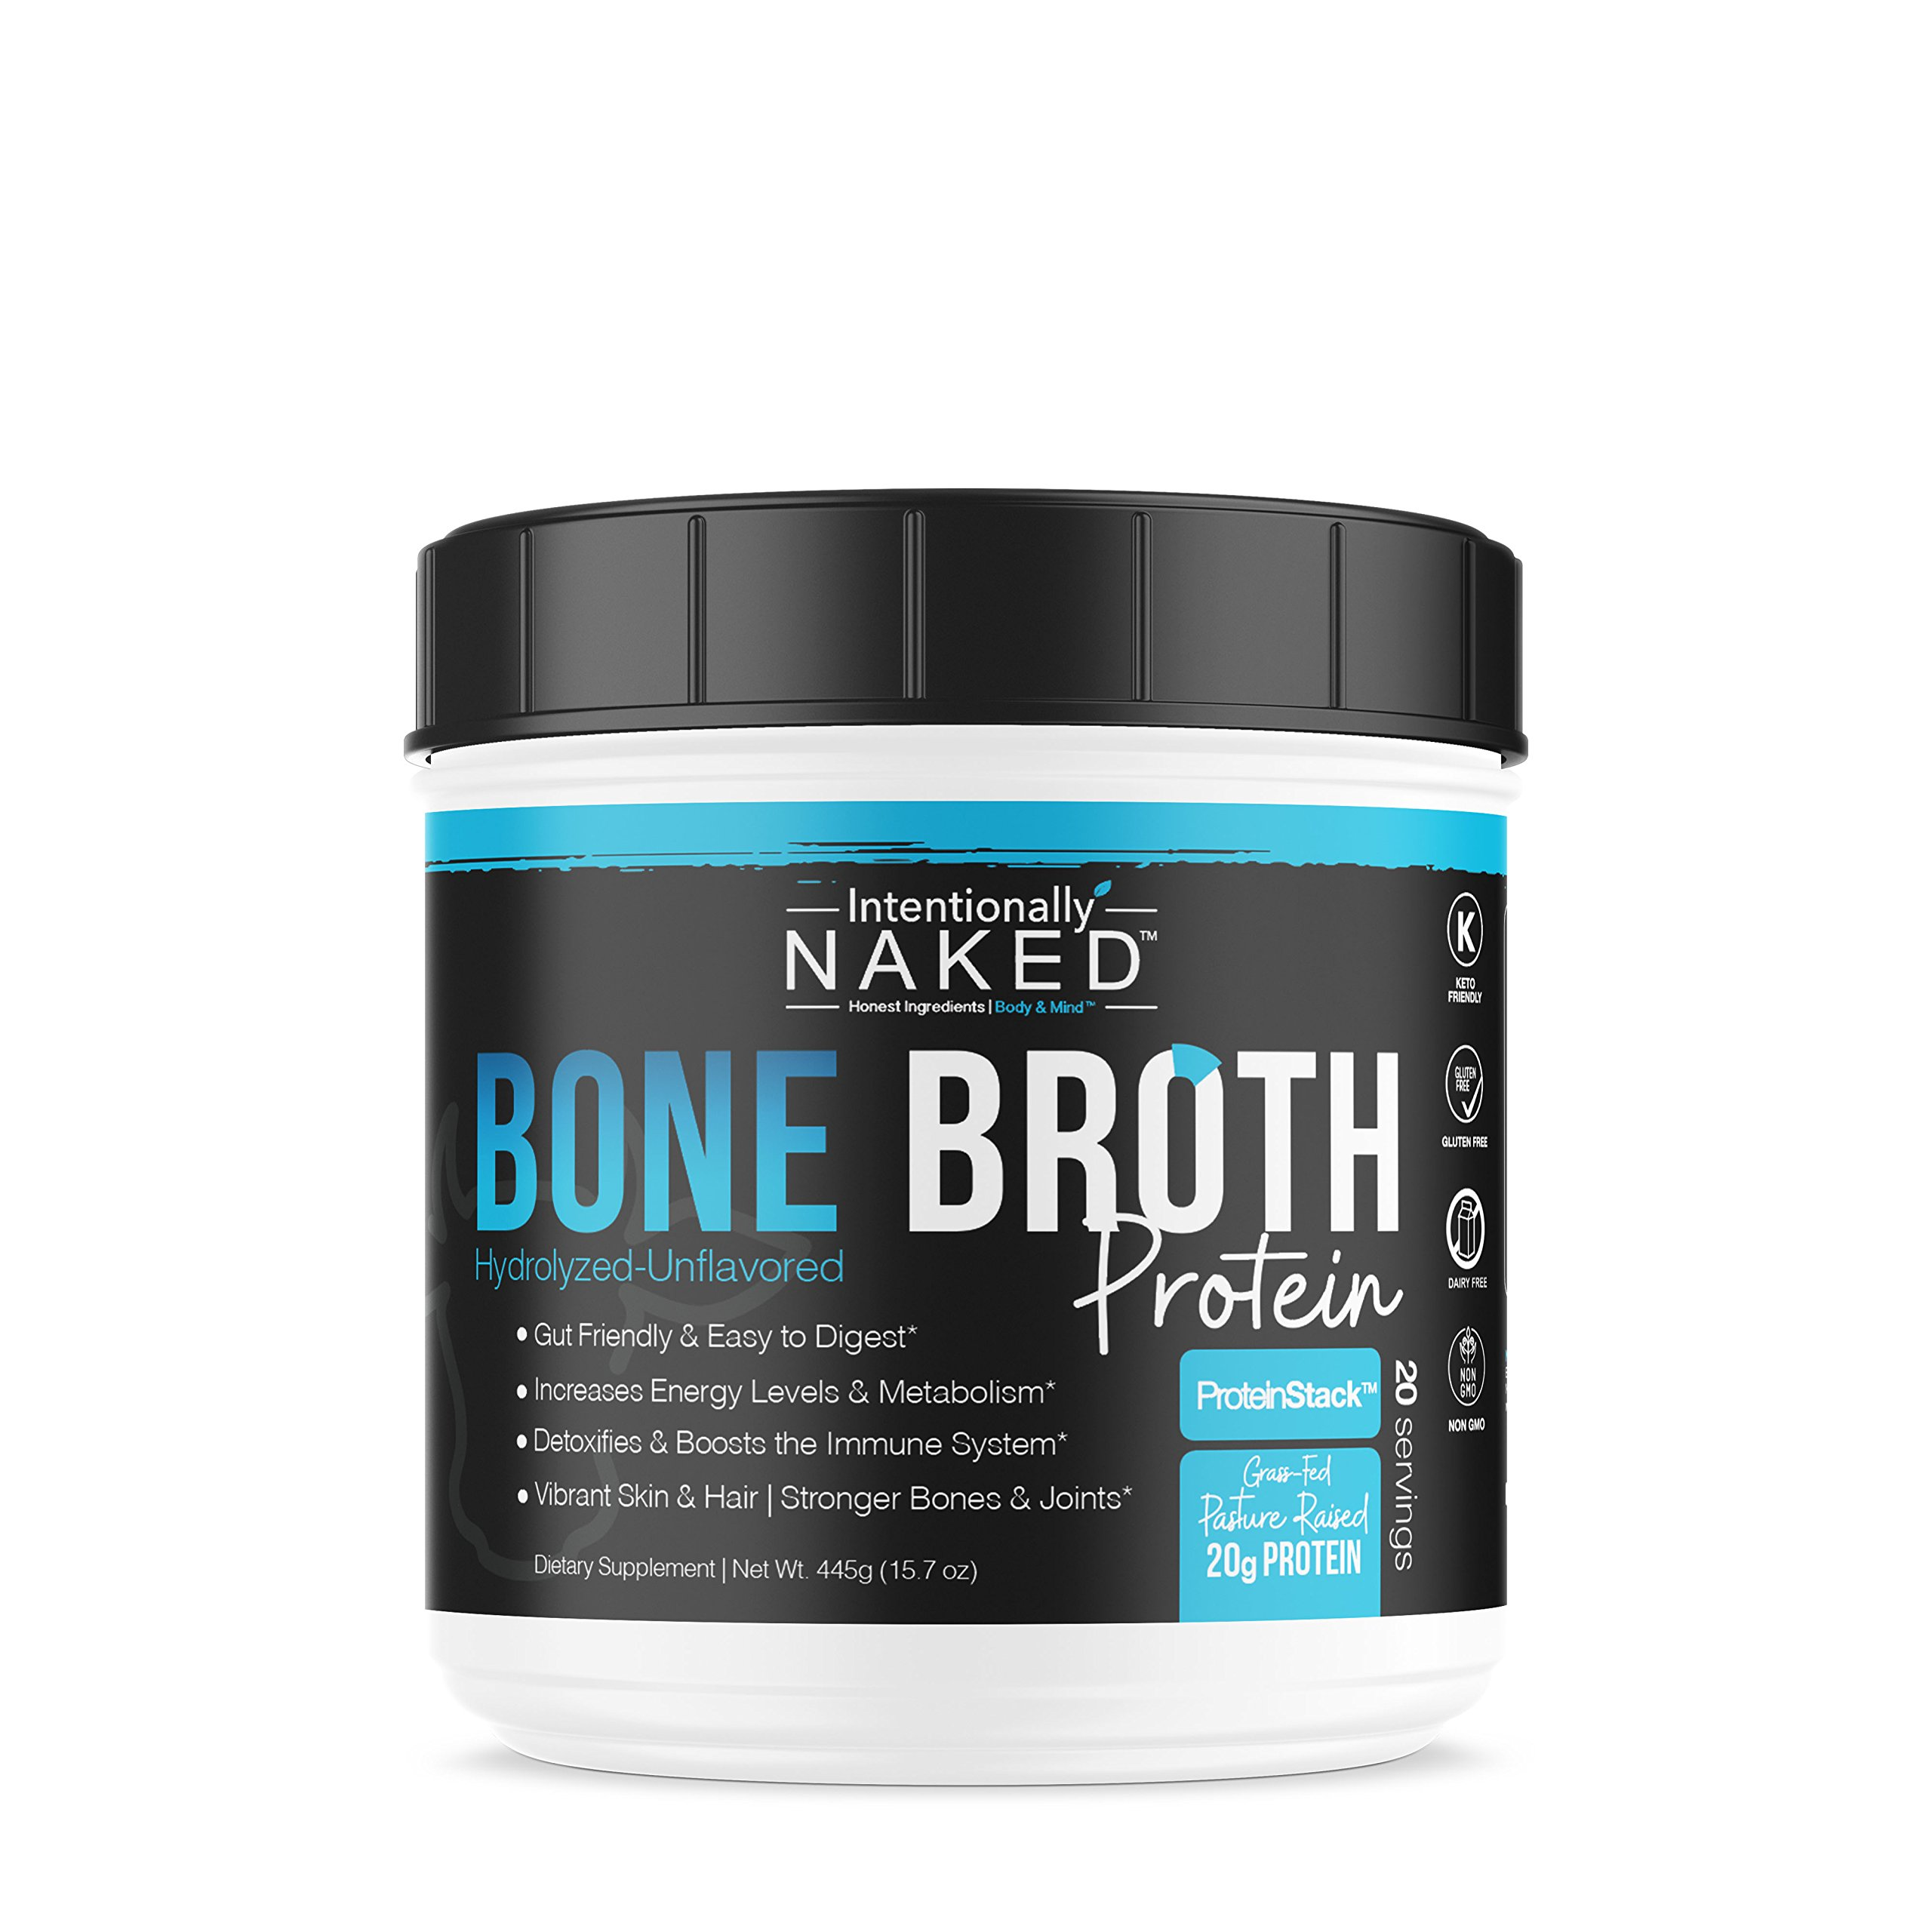 Pure Bone Broth Protein Powder - 20 Grams Protein - Supports Keto & Paleo Diets - Collagen Types 1, 2 & 3 - from Grass-Fed, Pasture Raised Cows - Dairy Free, Non-GMO - Unflavored, 20 Servings by Intentionally Bare